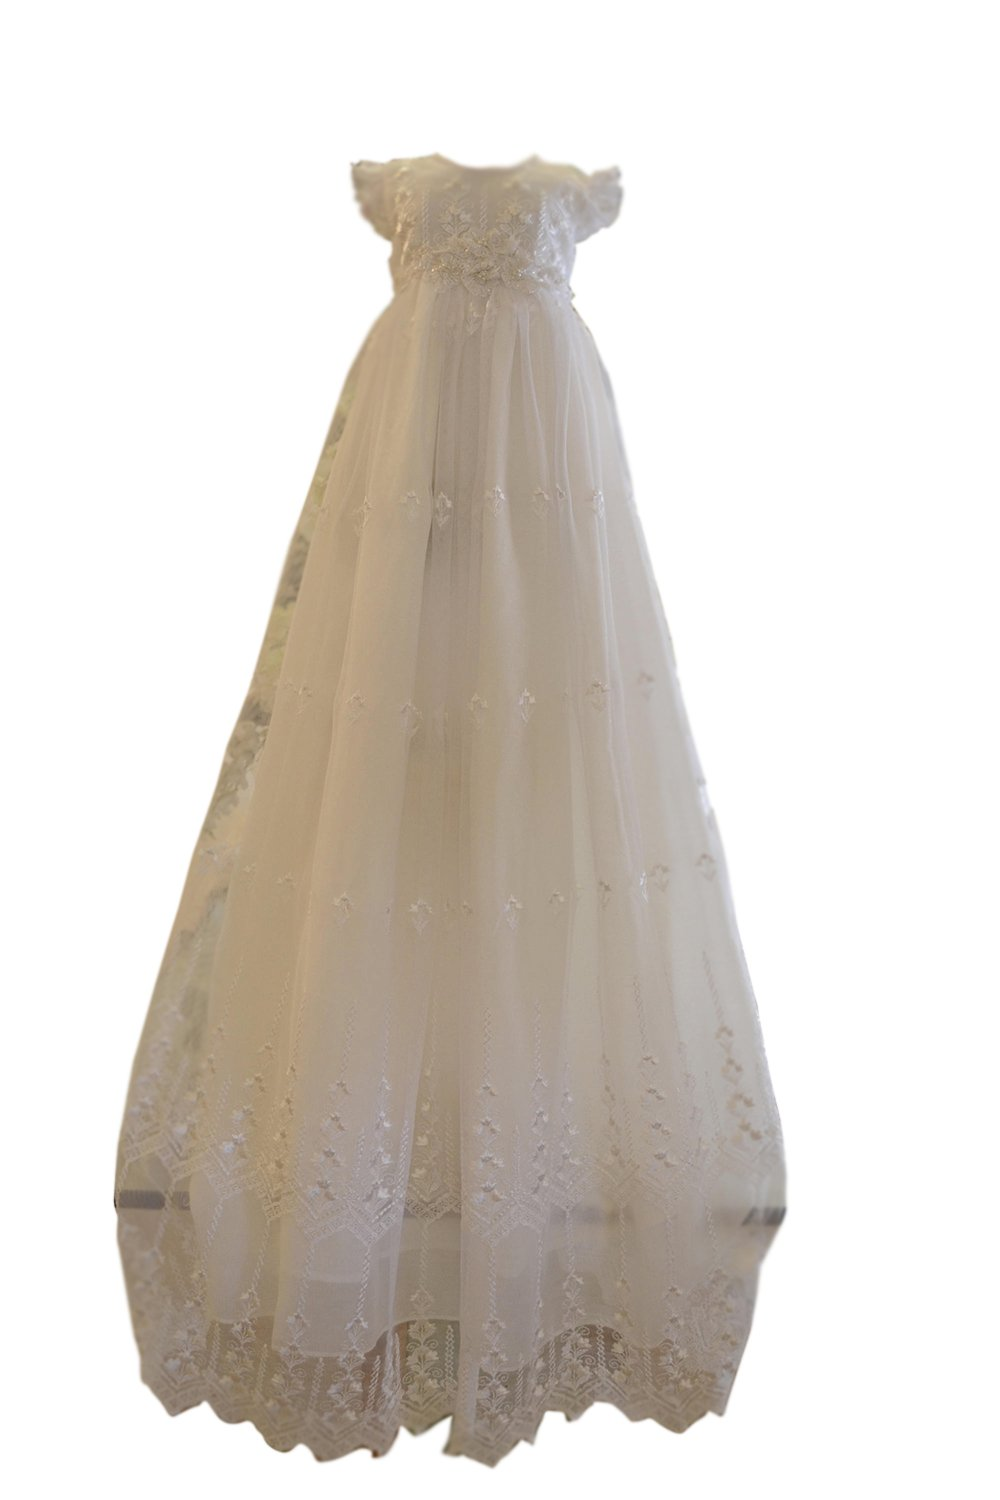 New Deve Newdeve White Round Neckline Puff Sleeves Embroidery Beaded Tulle Satin Baby Christening Gowns (Whitw, Customize)